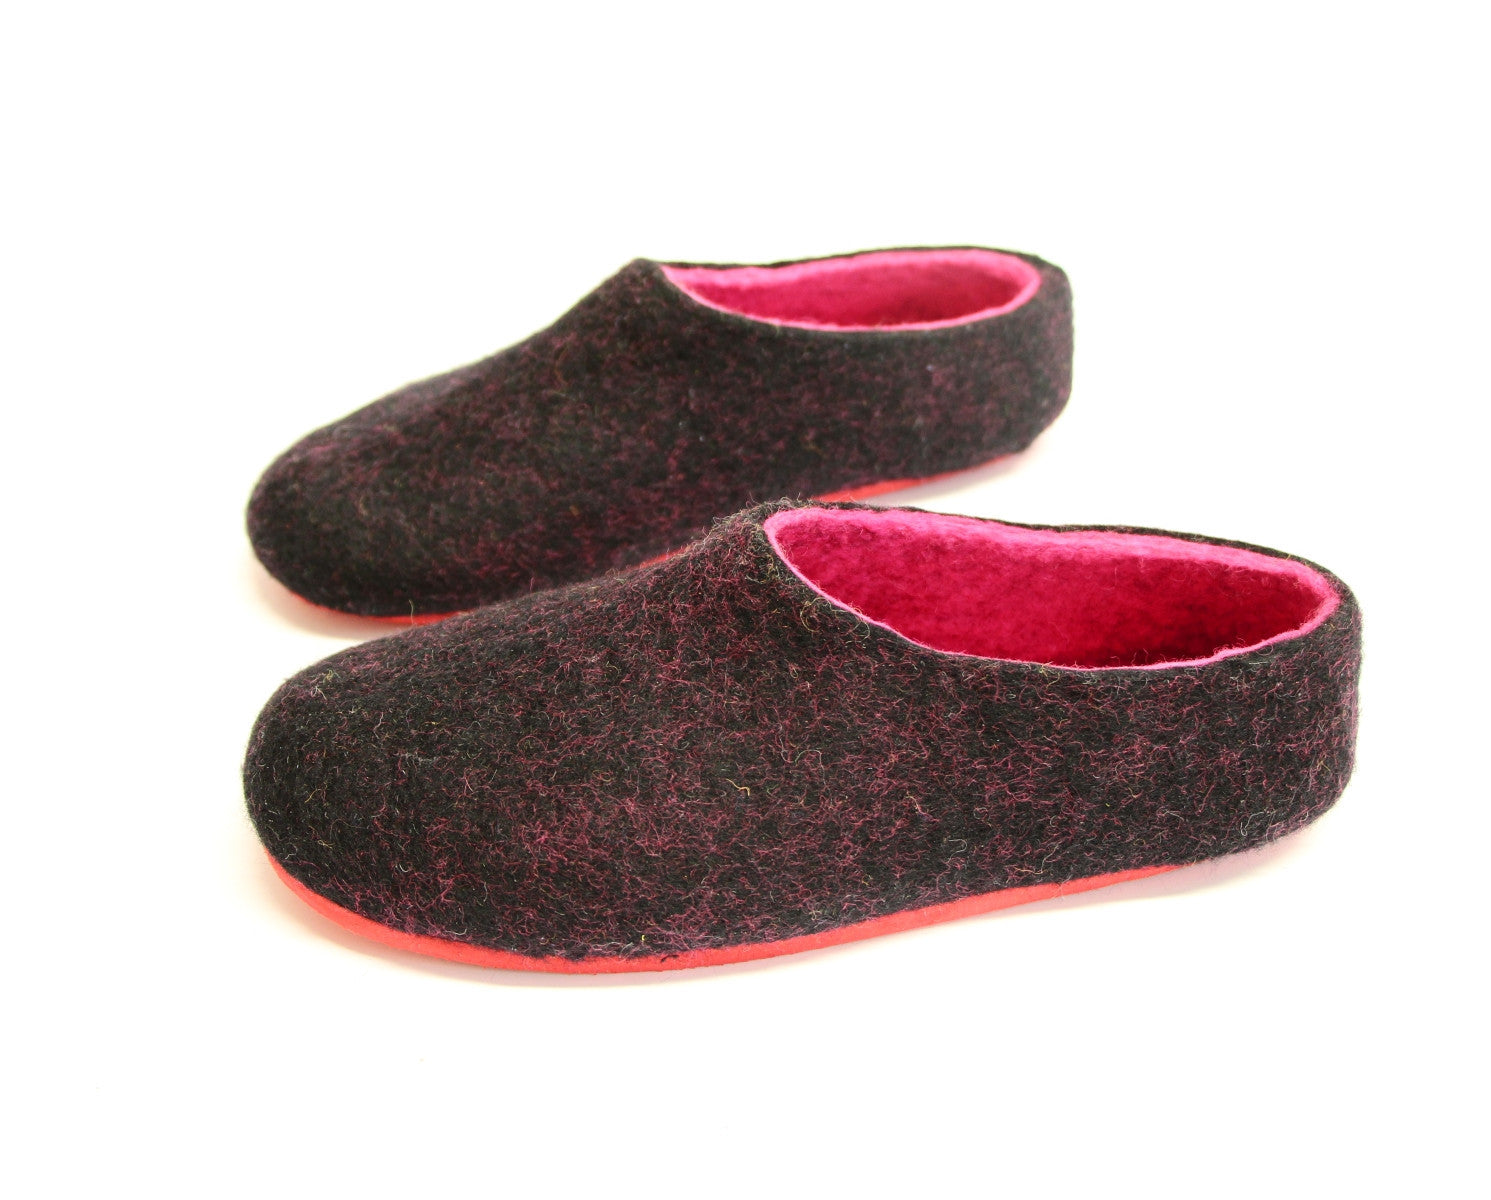 Womens Felt Slippers Black Fuchsia Contrast Sole - Wool Walker  - 4